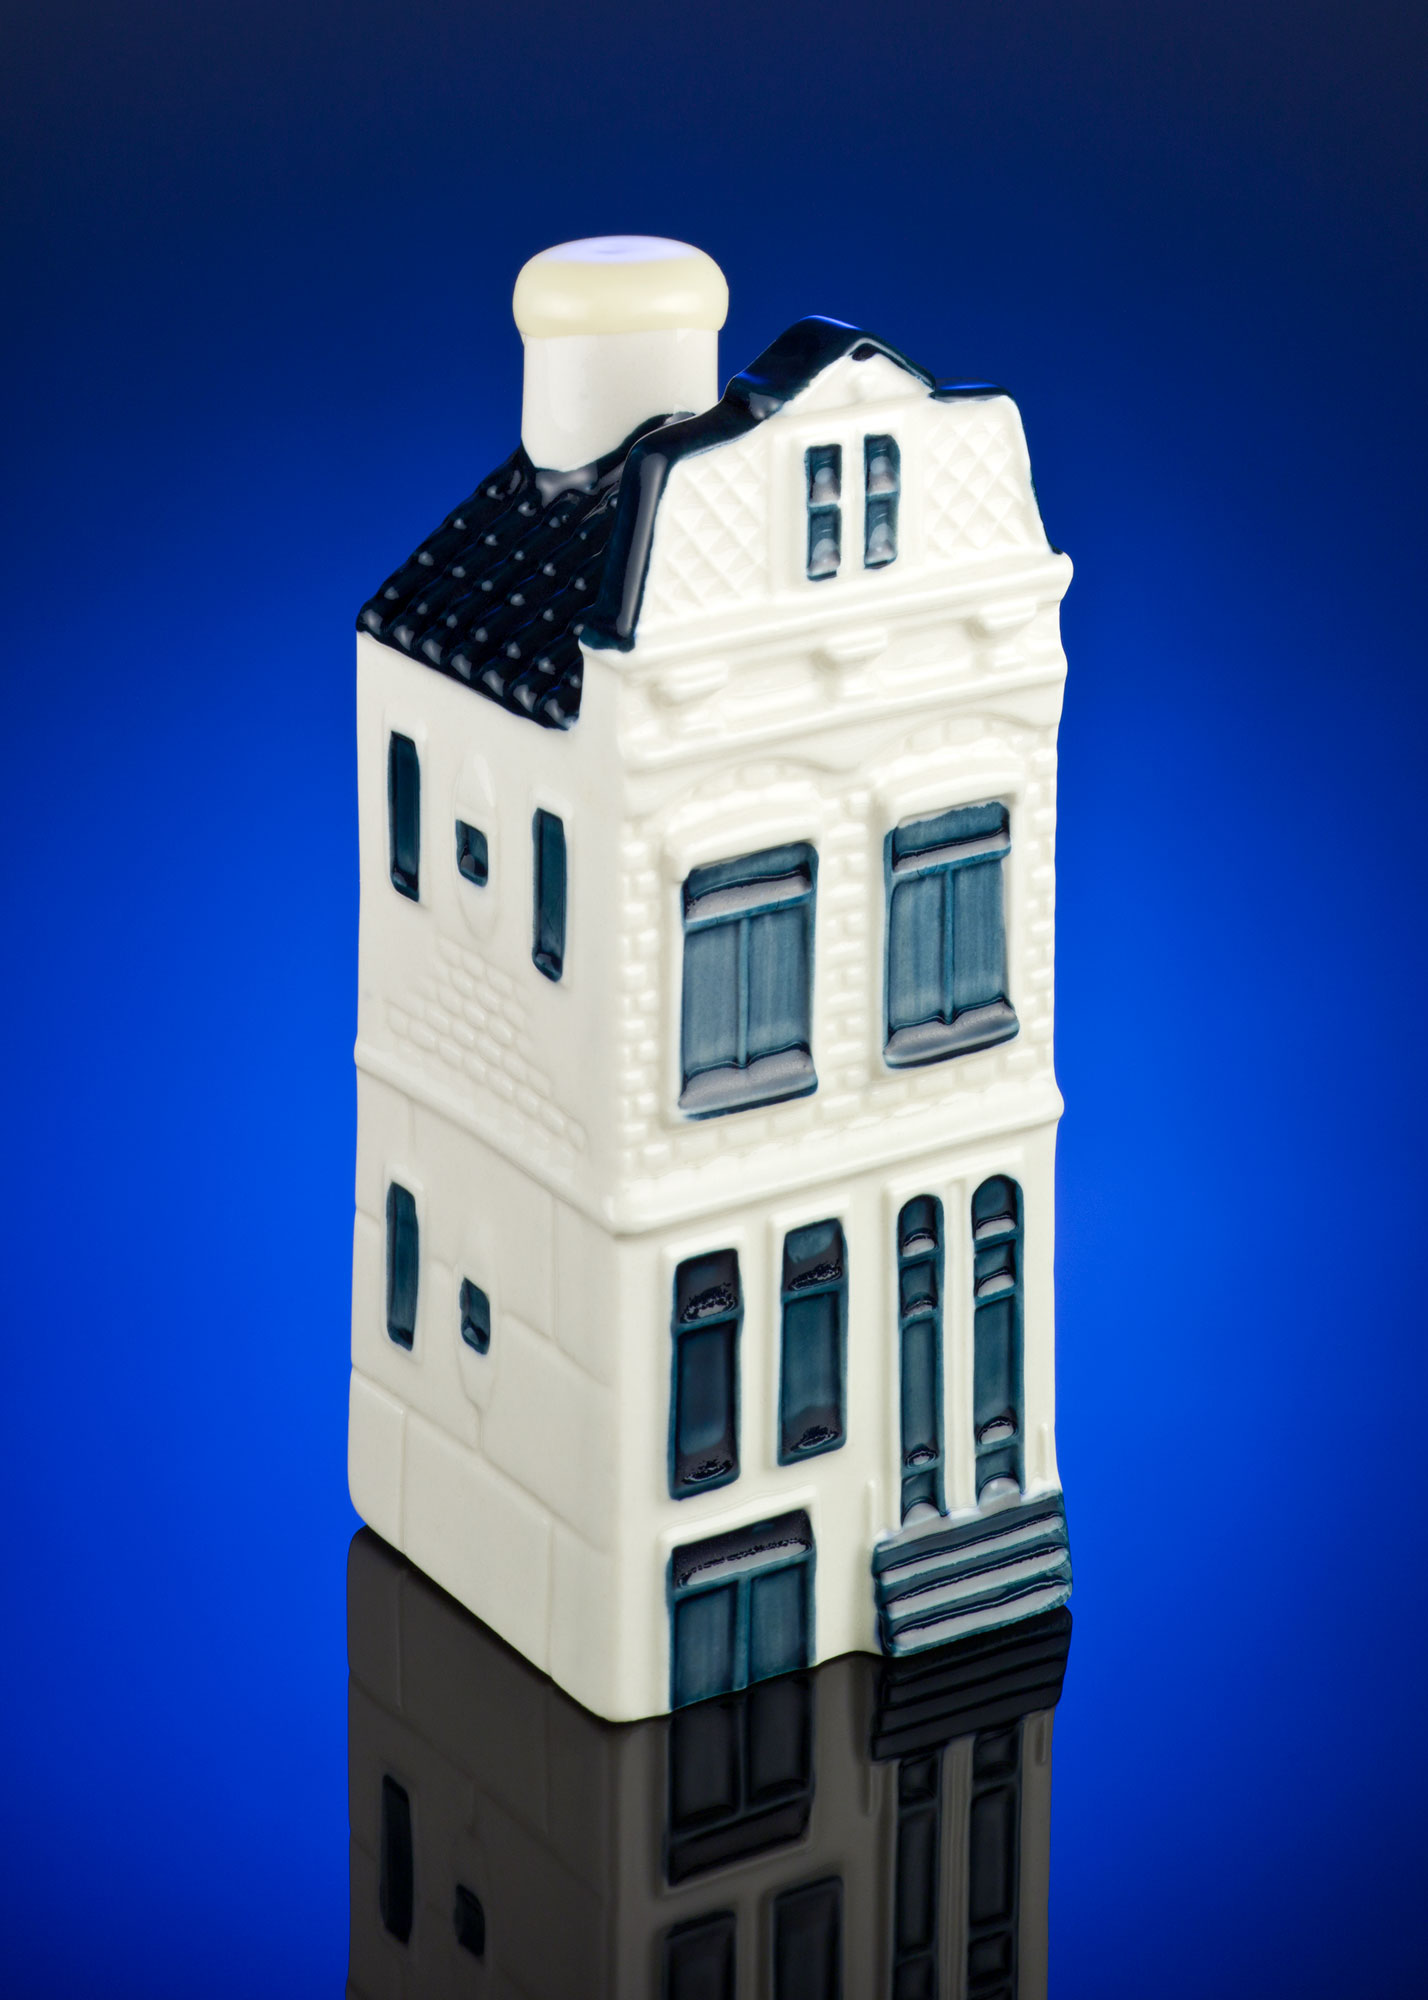 Product Photography I: KLM Canal House by Alex Kay